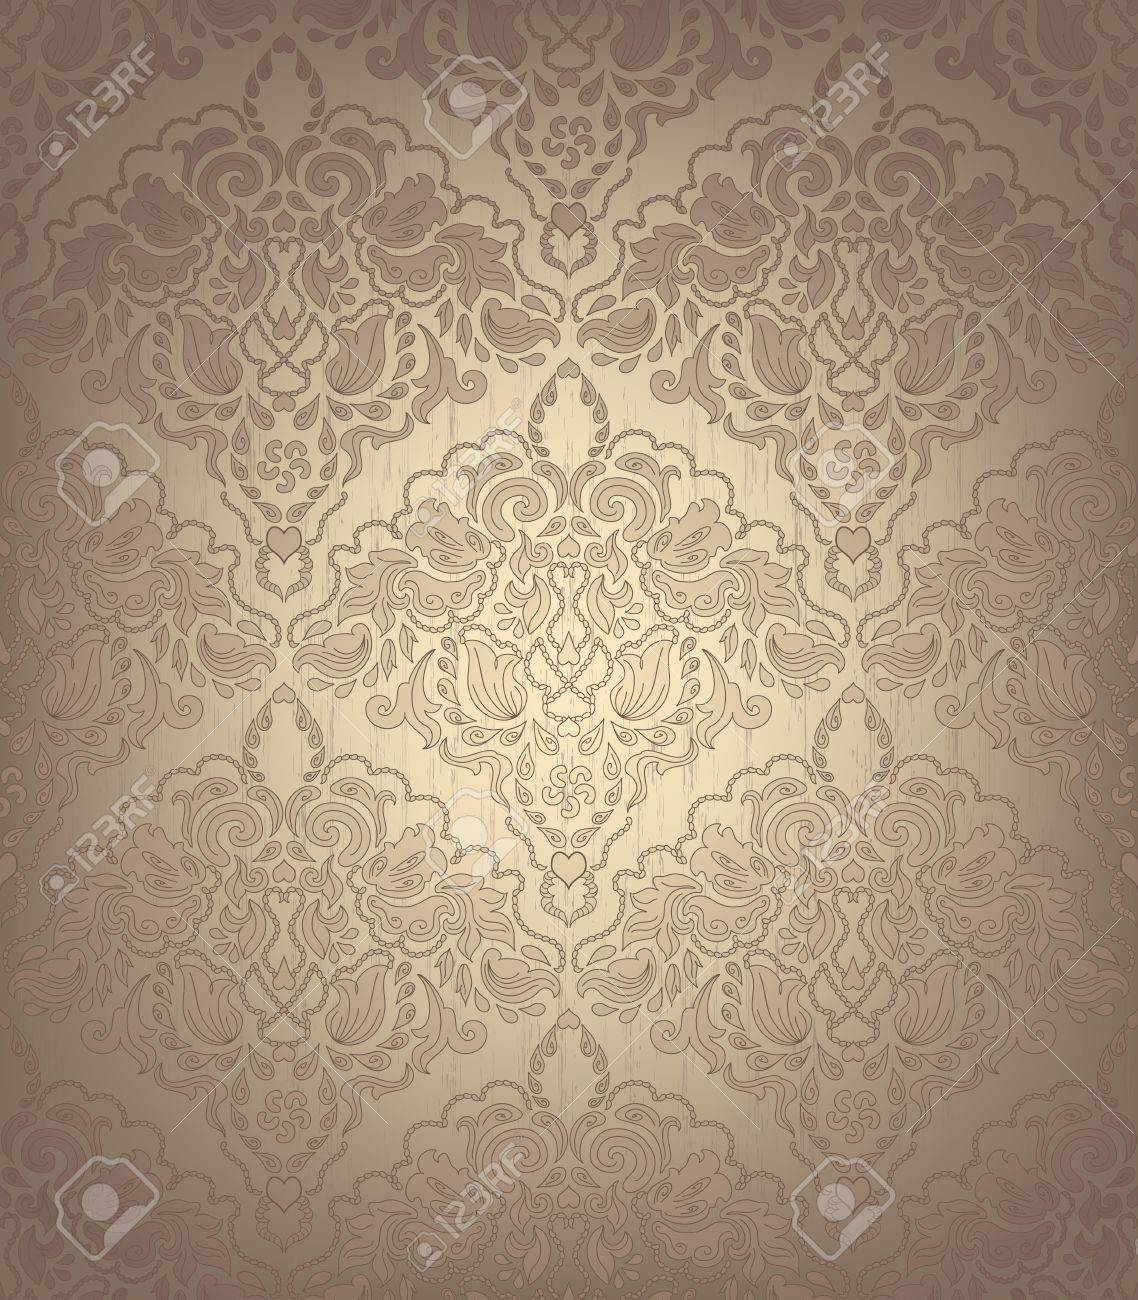 Seamless Floral Ornament - 13835993